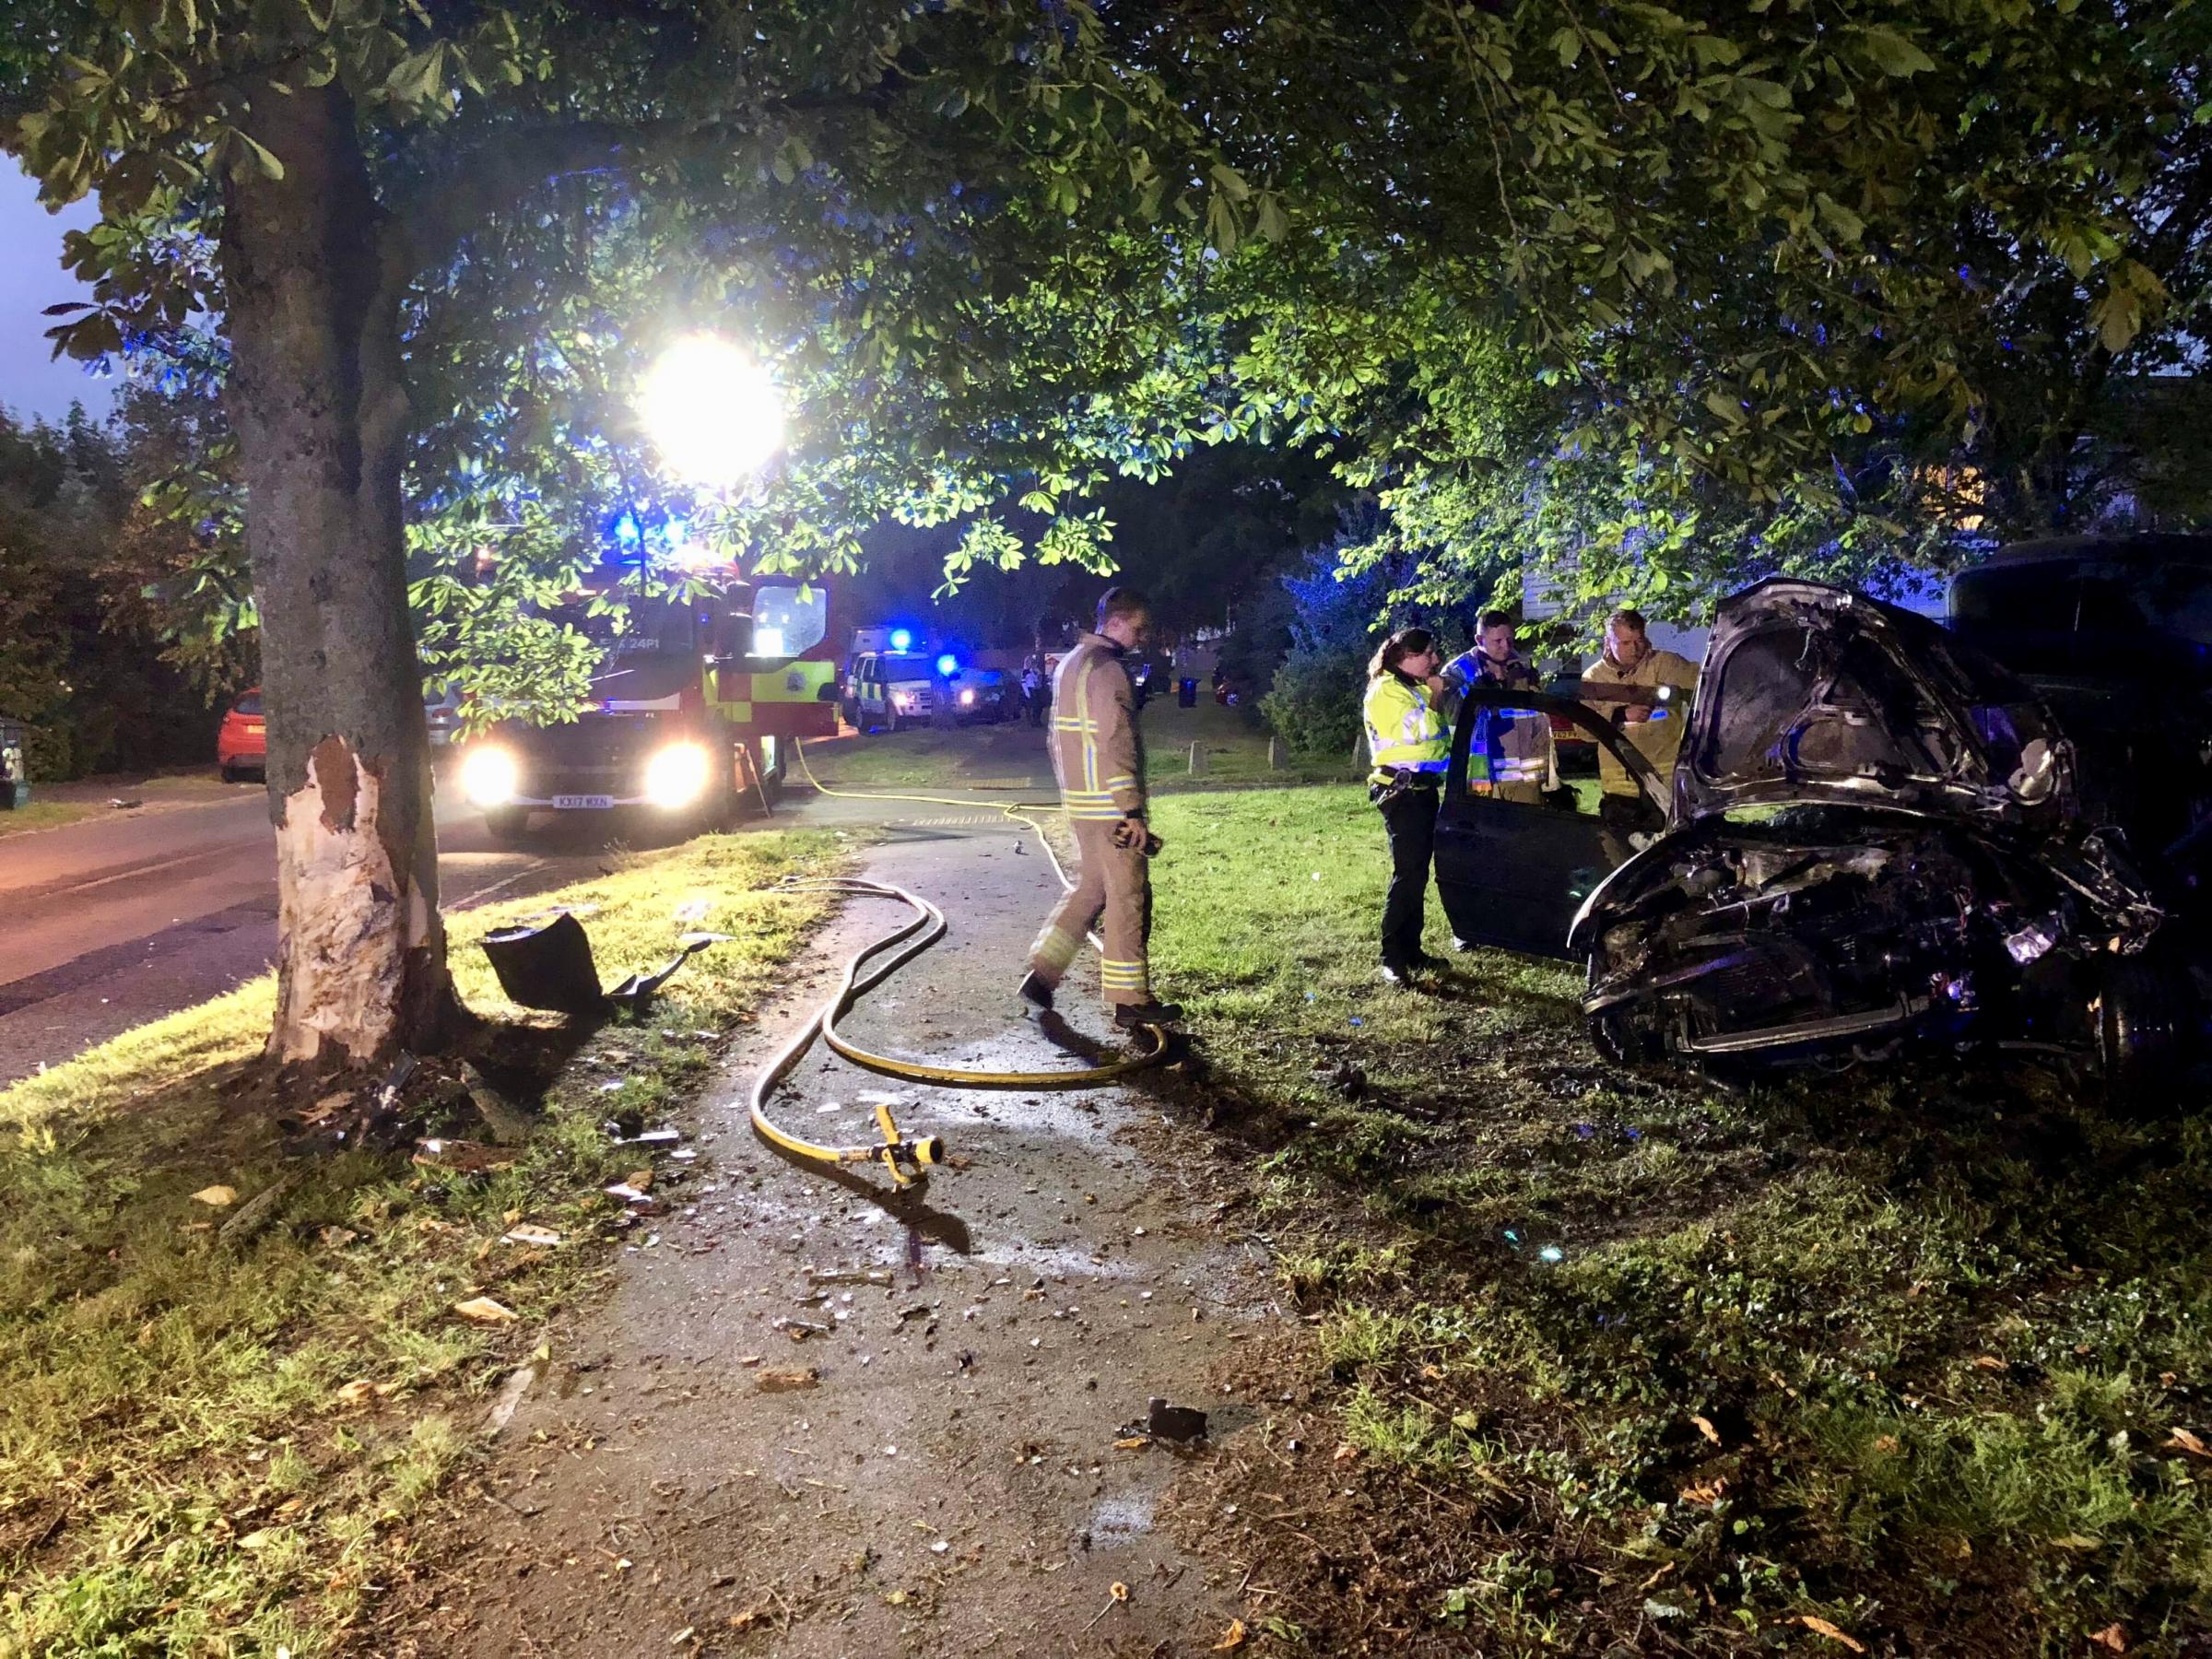 Car bursts into flames after crashing into tree in Wantage